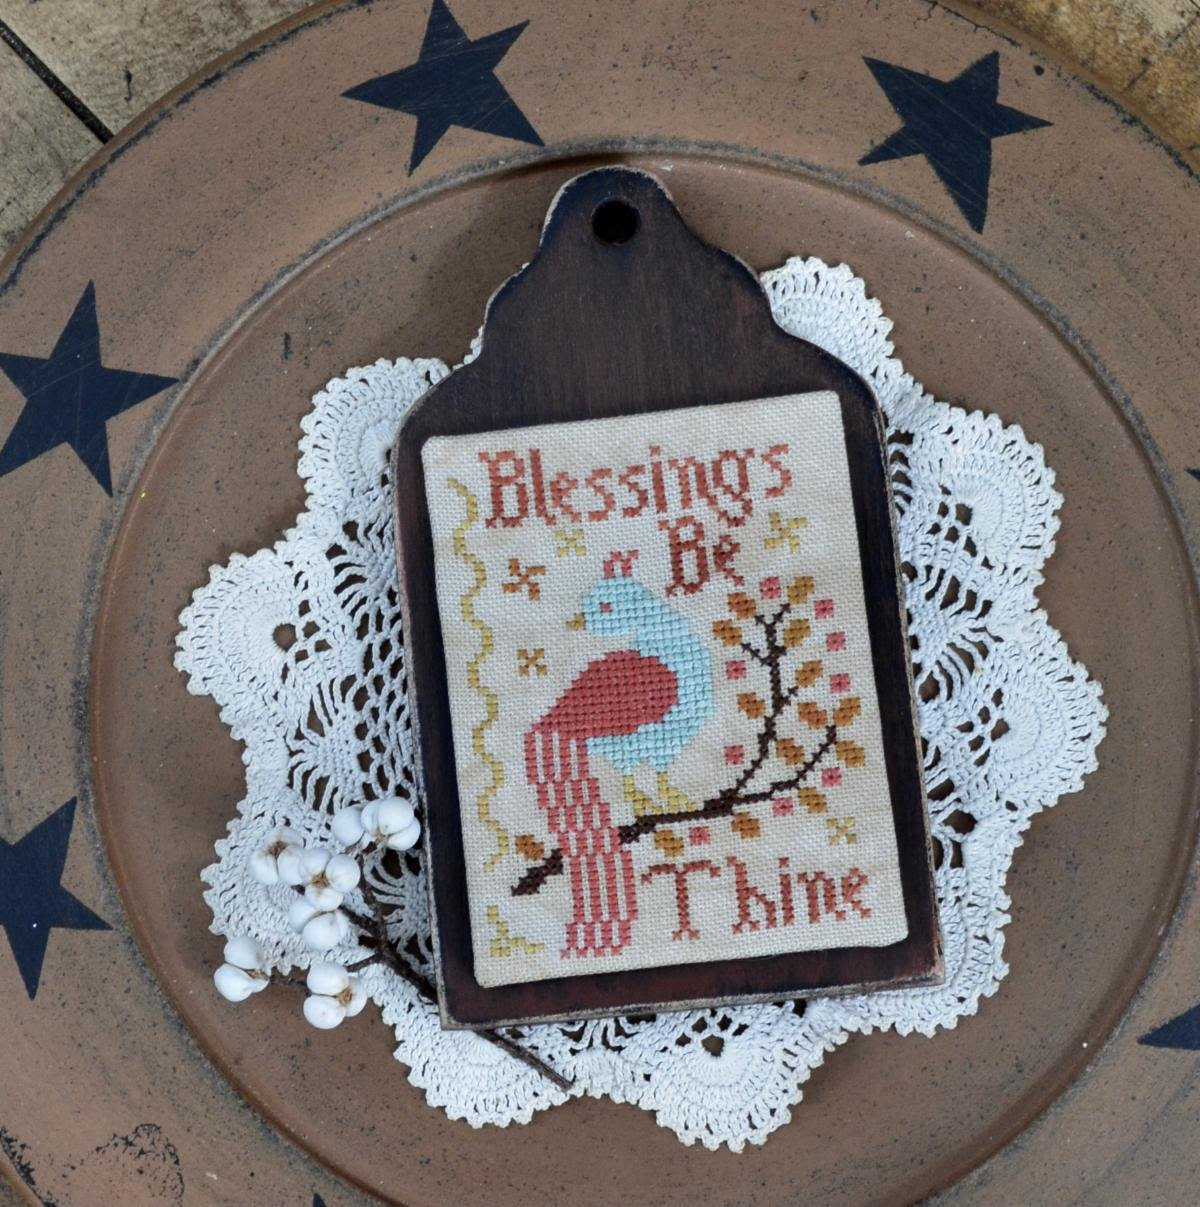 Blessings Be Thine chart - Annie Beez